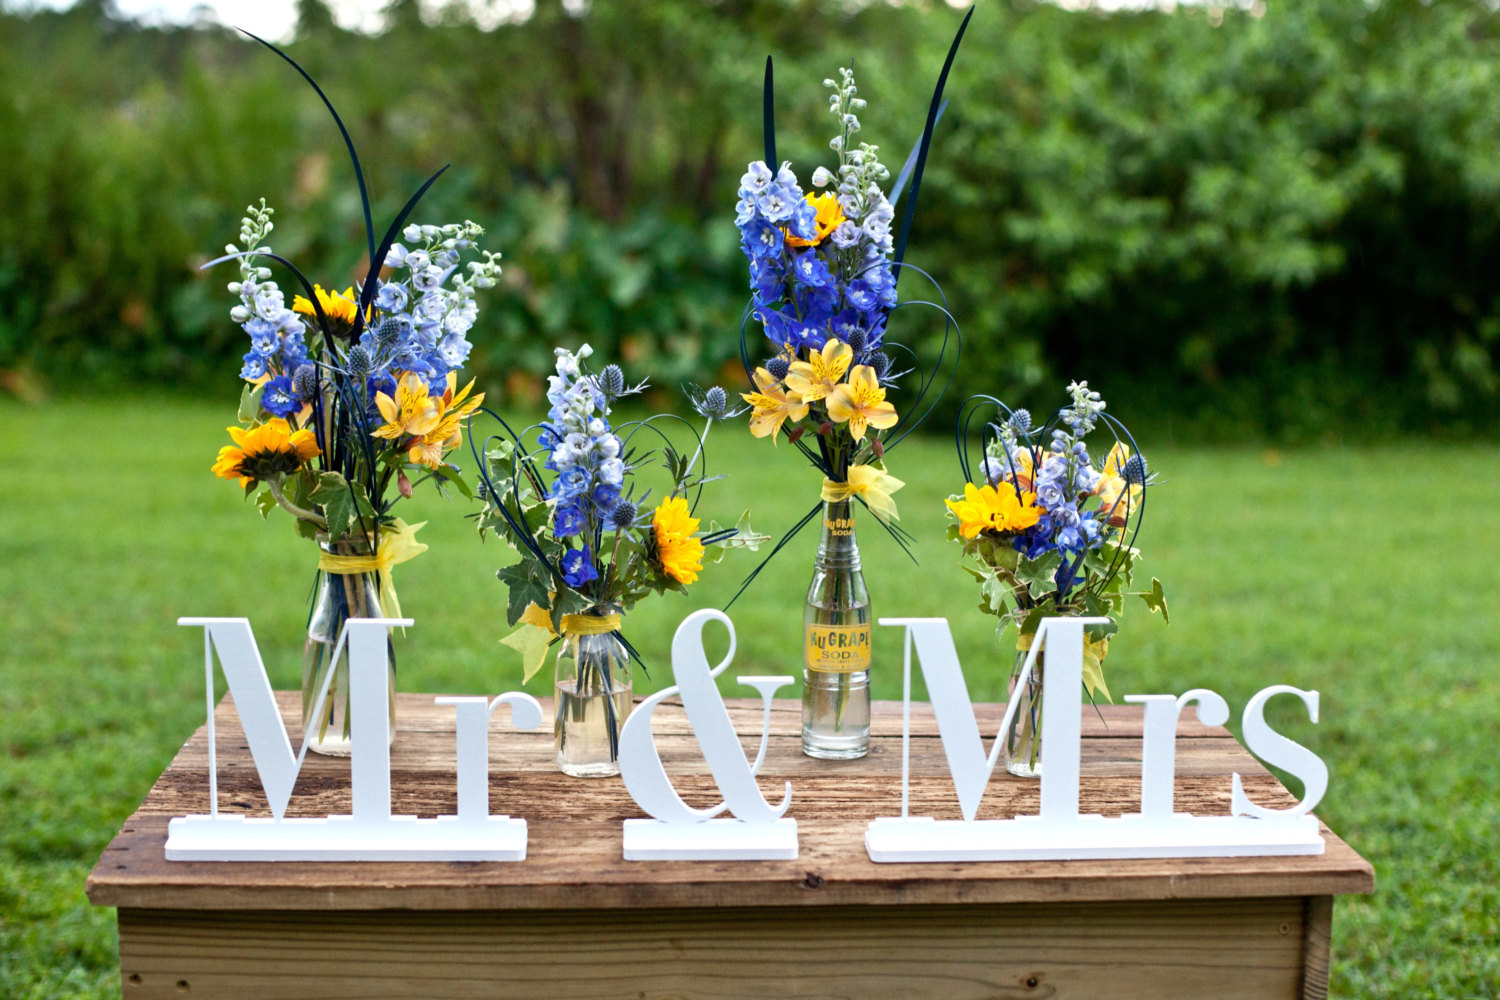 mr and mrs signage | via bride and groom chair signs https://emmalinebride.com/decor/bride-and-groom-chairs/